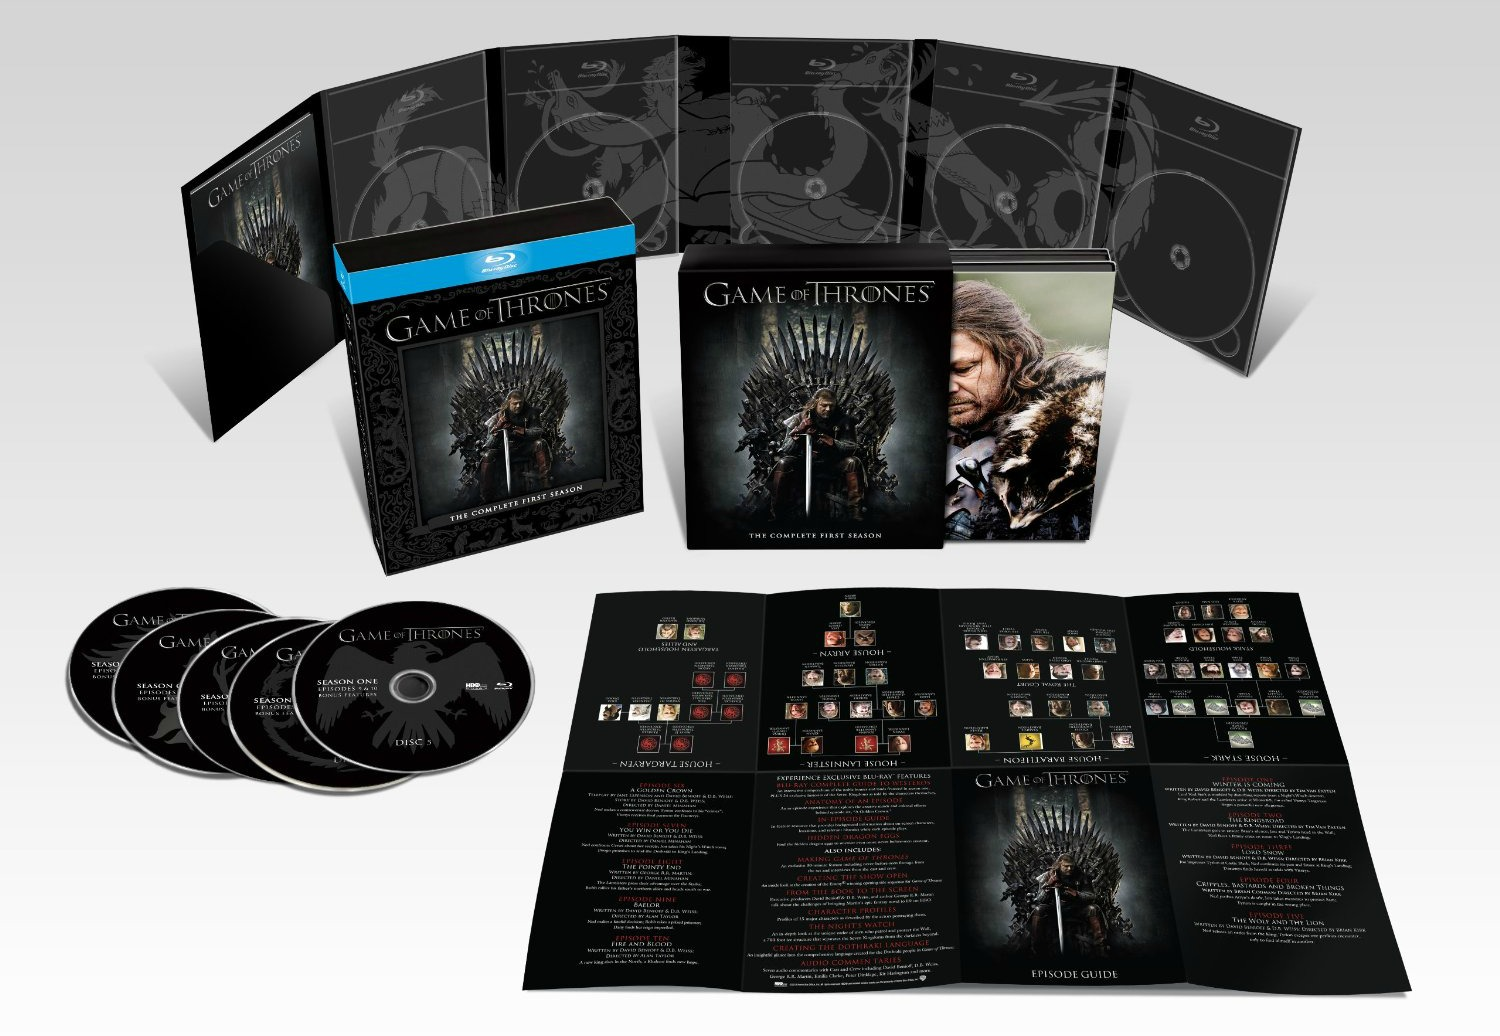 game of thrones season 1 for sale